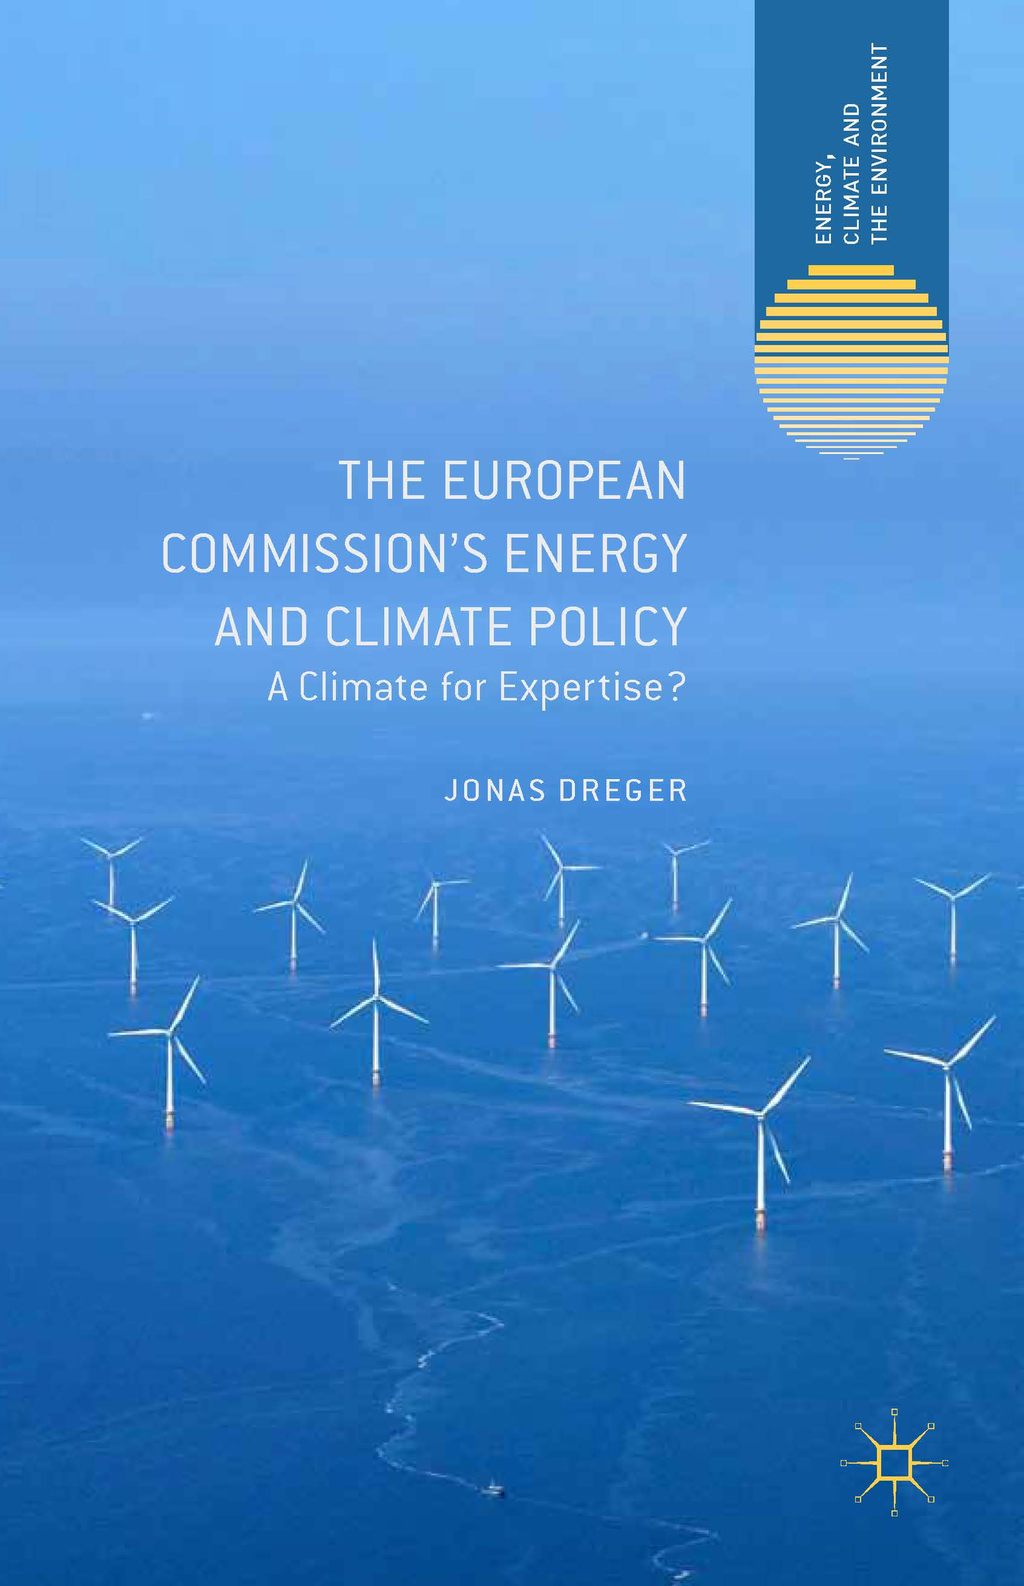 The European Commission's Energy and Climate Policy A Climate for Expertise?